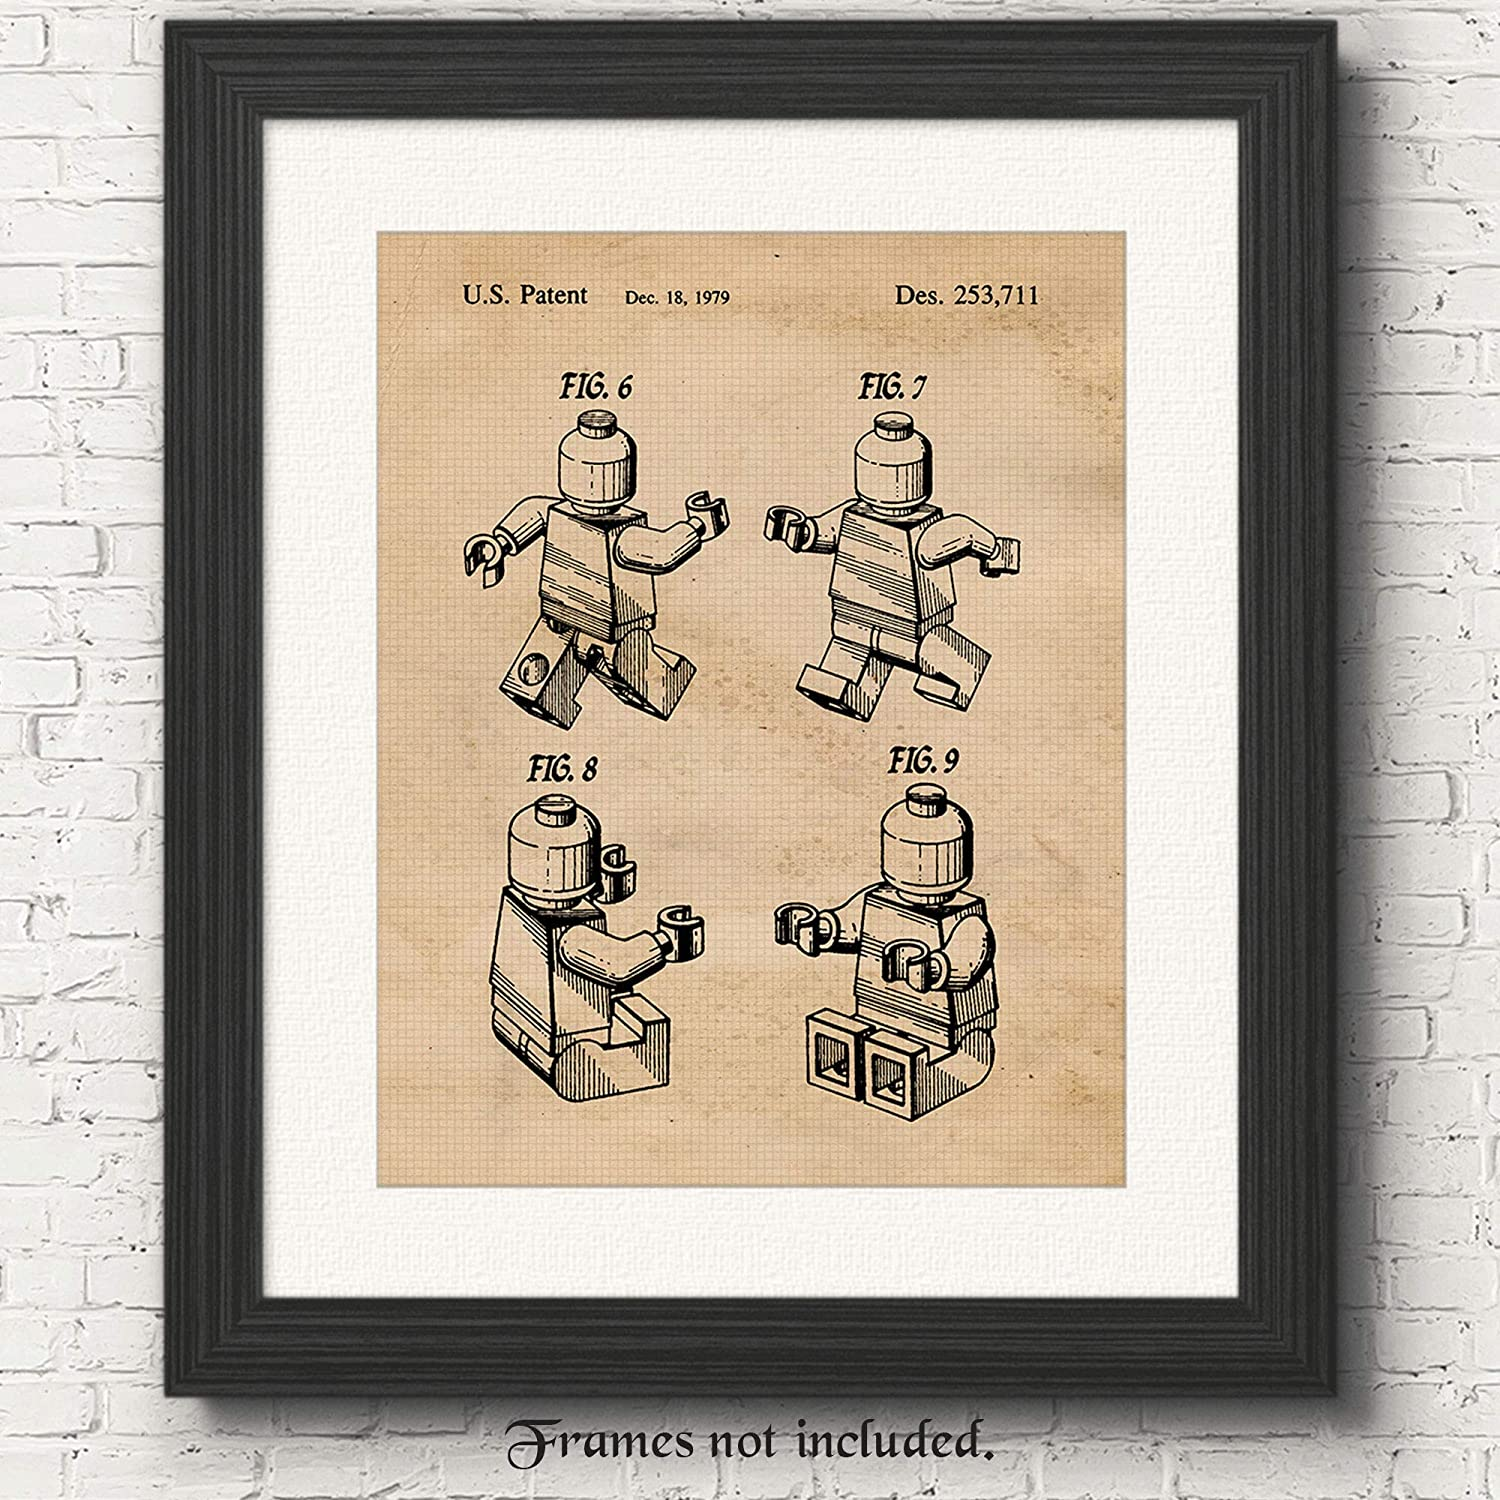 Vintage Lego Patent Poster Prints, Set of 1 (11x14) Unframed Photo, Wall Art Decor Gifts Under 15 for Home, Office, Garage, Man Cave, College Student, Teacher, Children, Comic-Con & Movies Fan